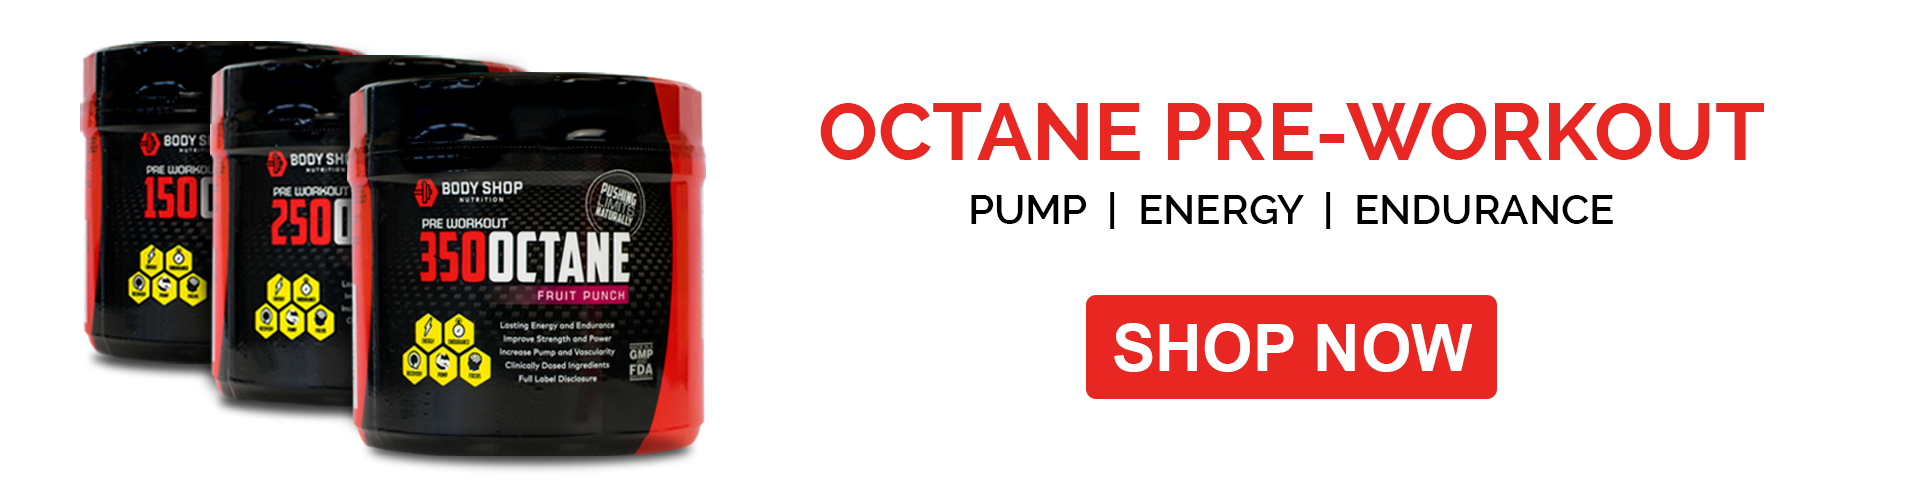 Octane Pre-Workout | Shop Now